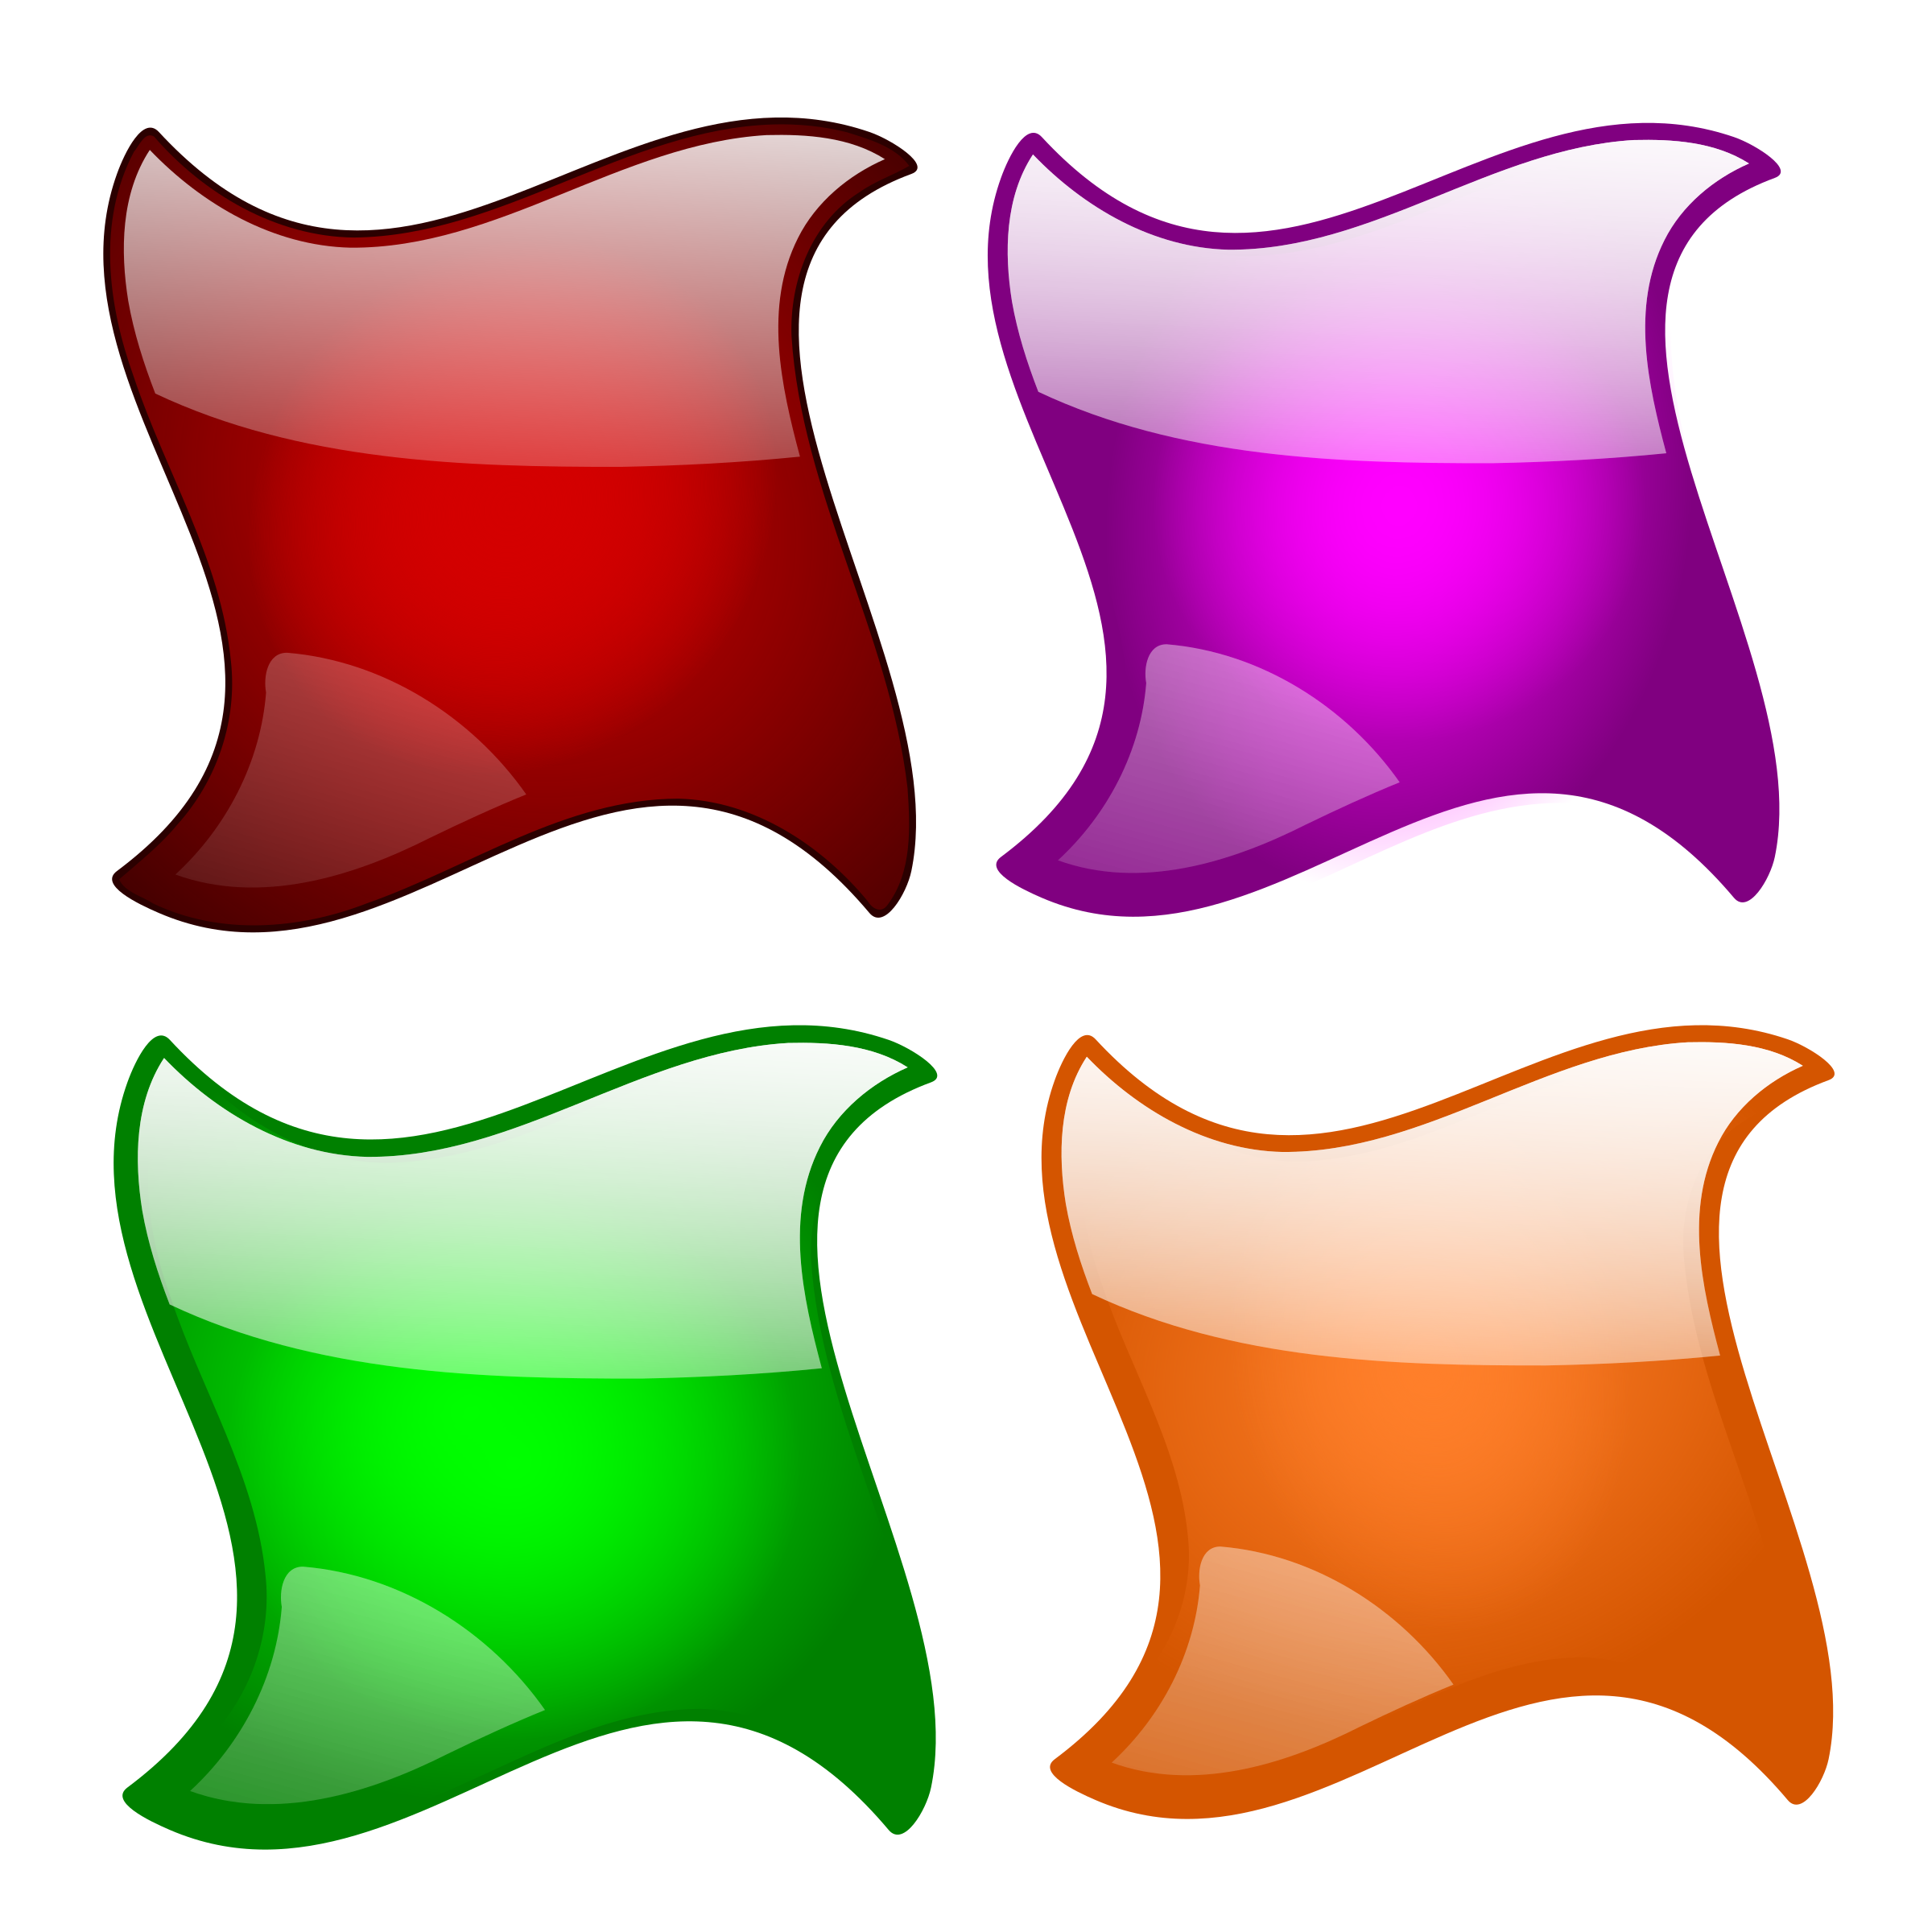 svg transparent download Button clipart different shape. Glossy shapes big image.